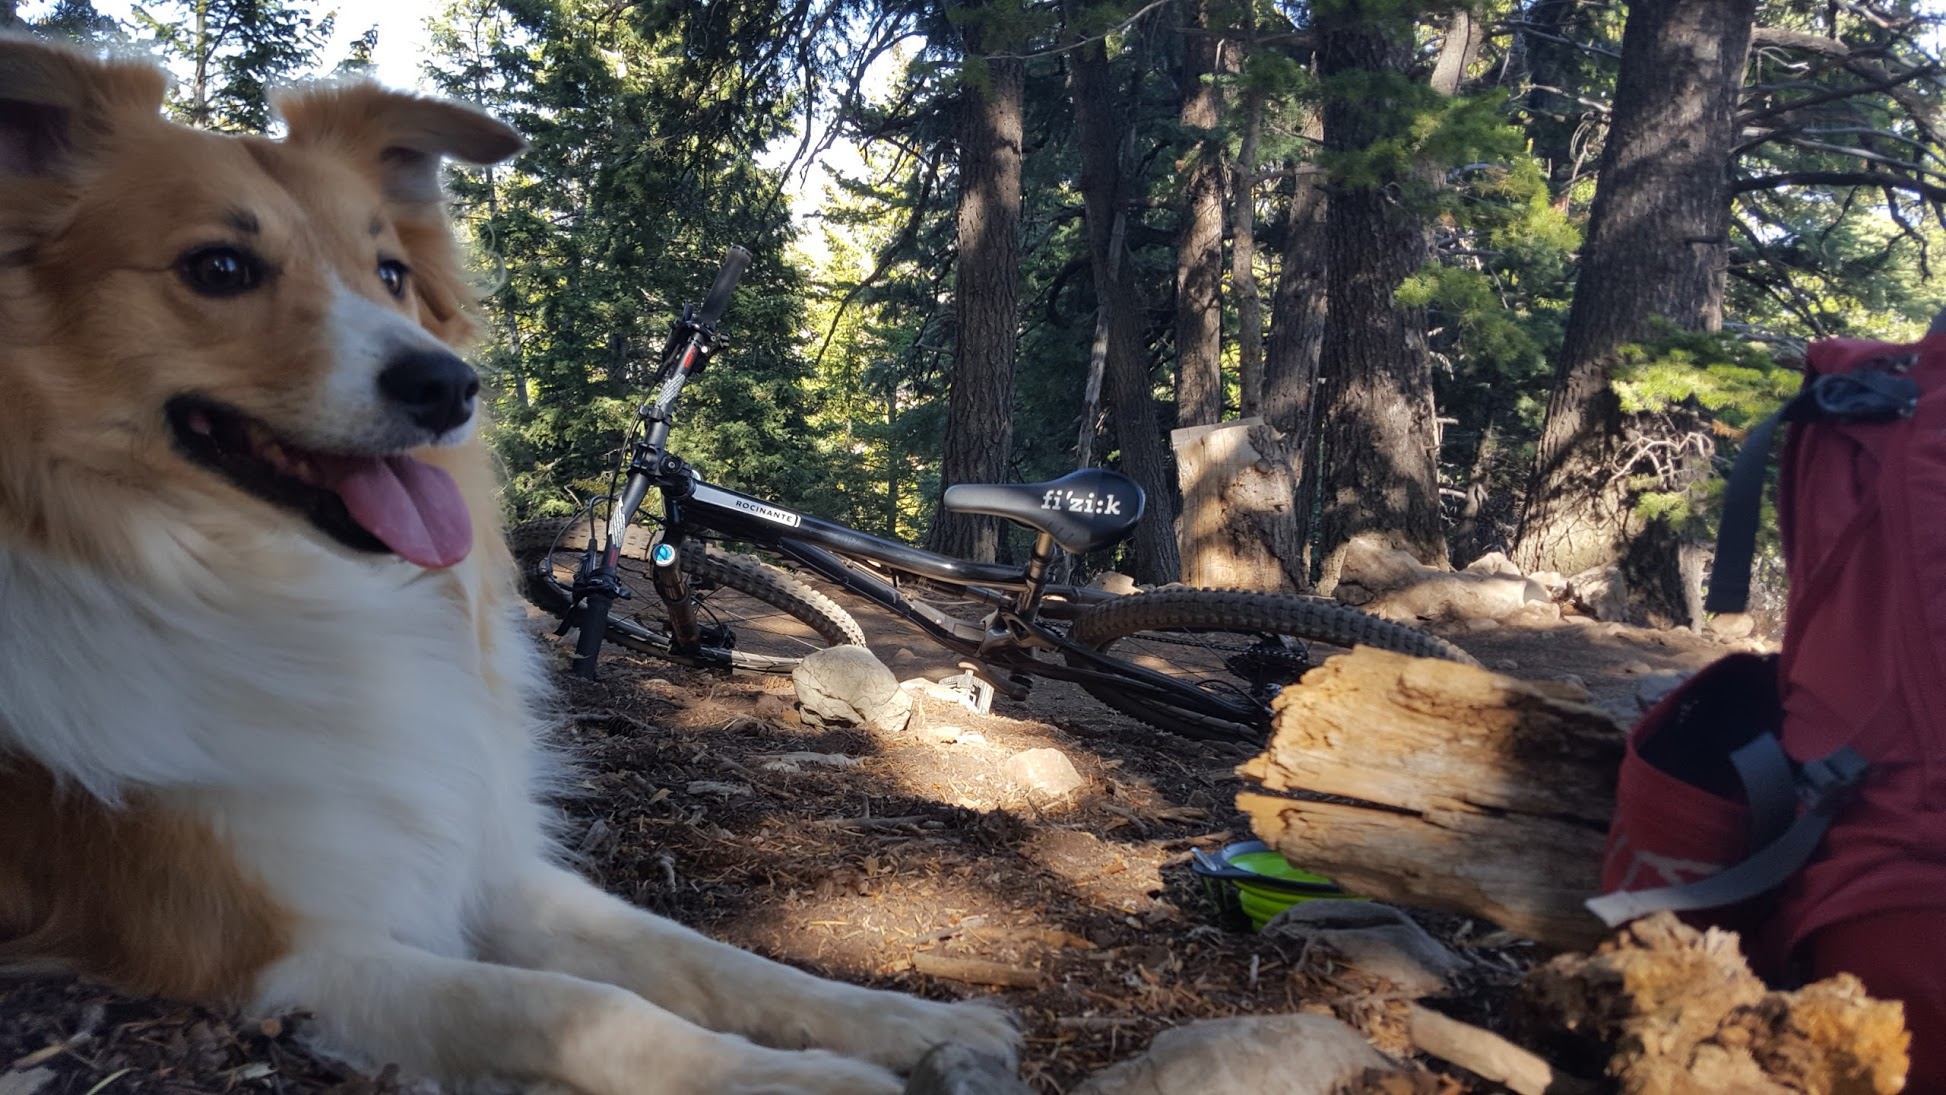 Mountain Bike Dog resting by the side of the trail